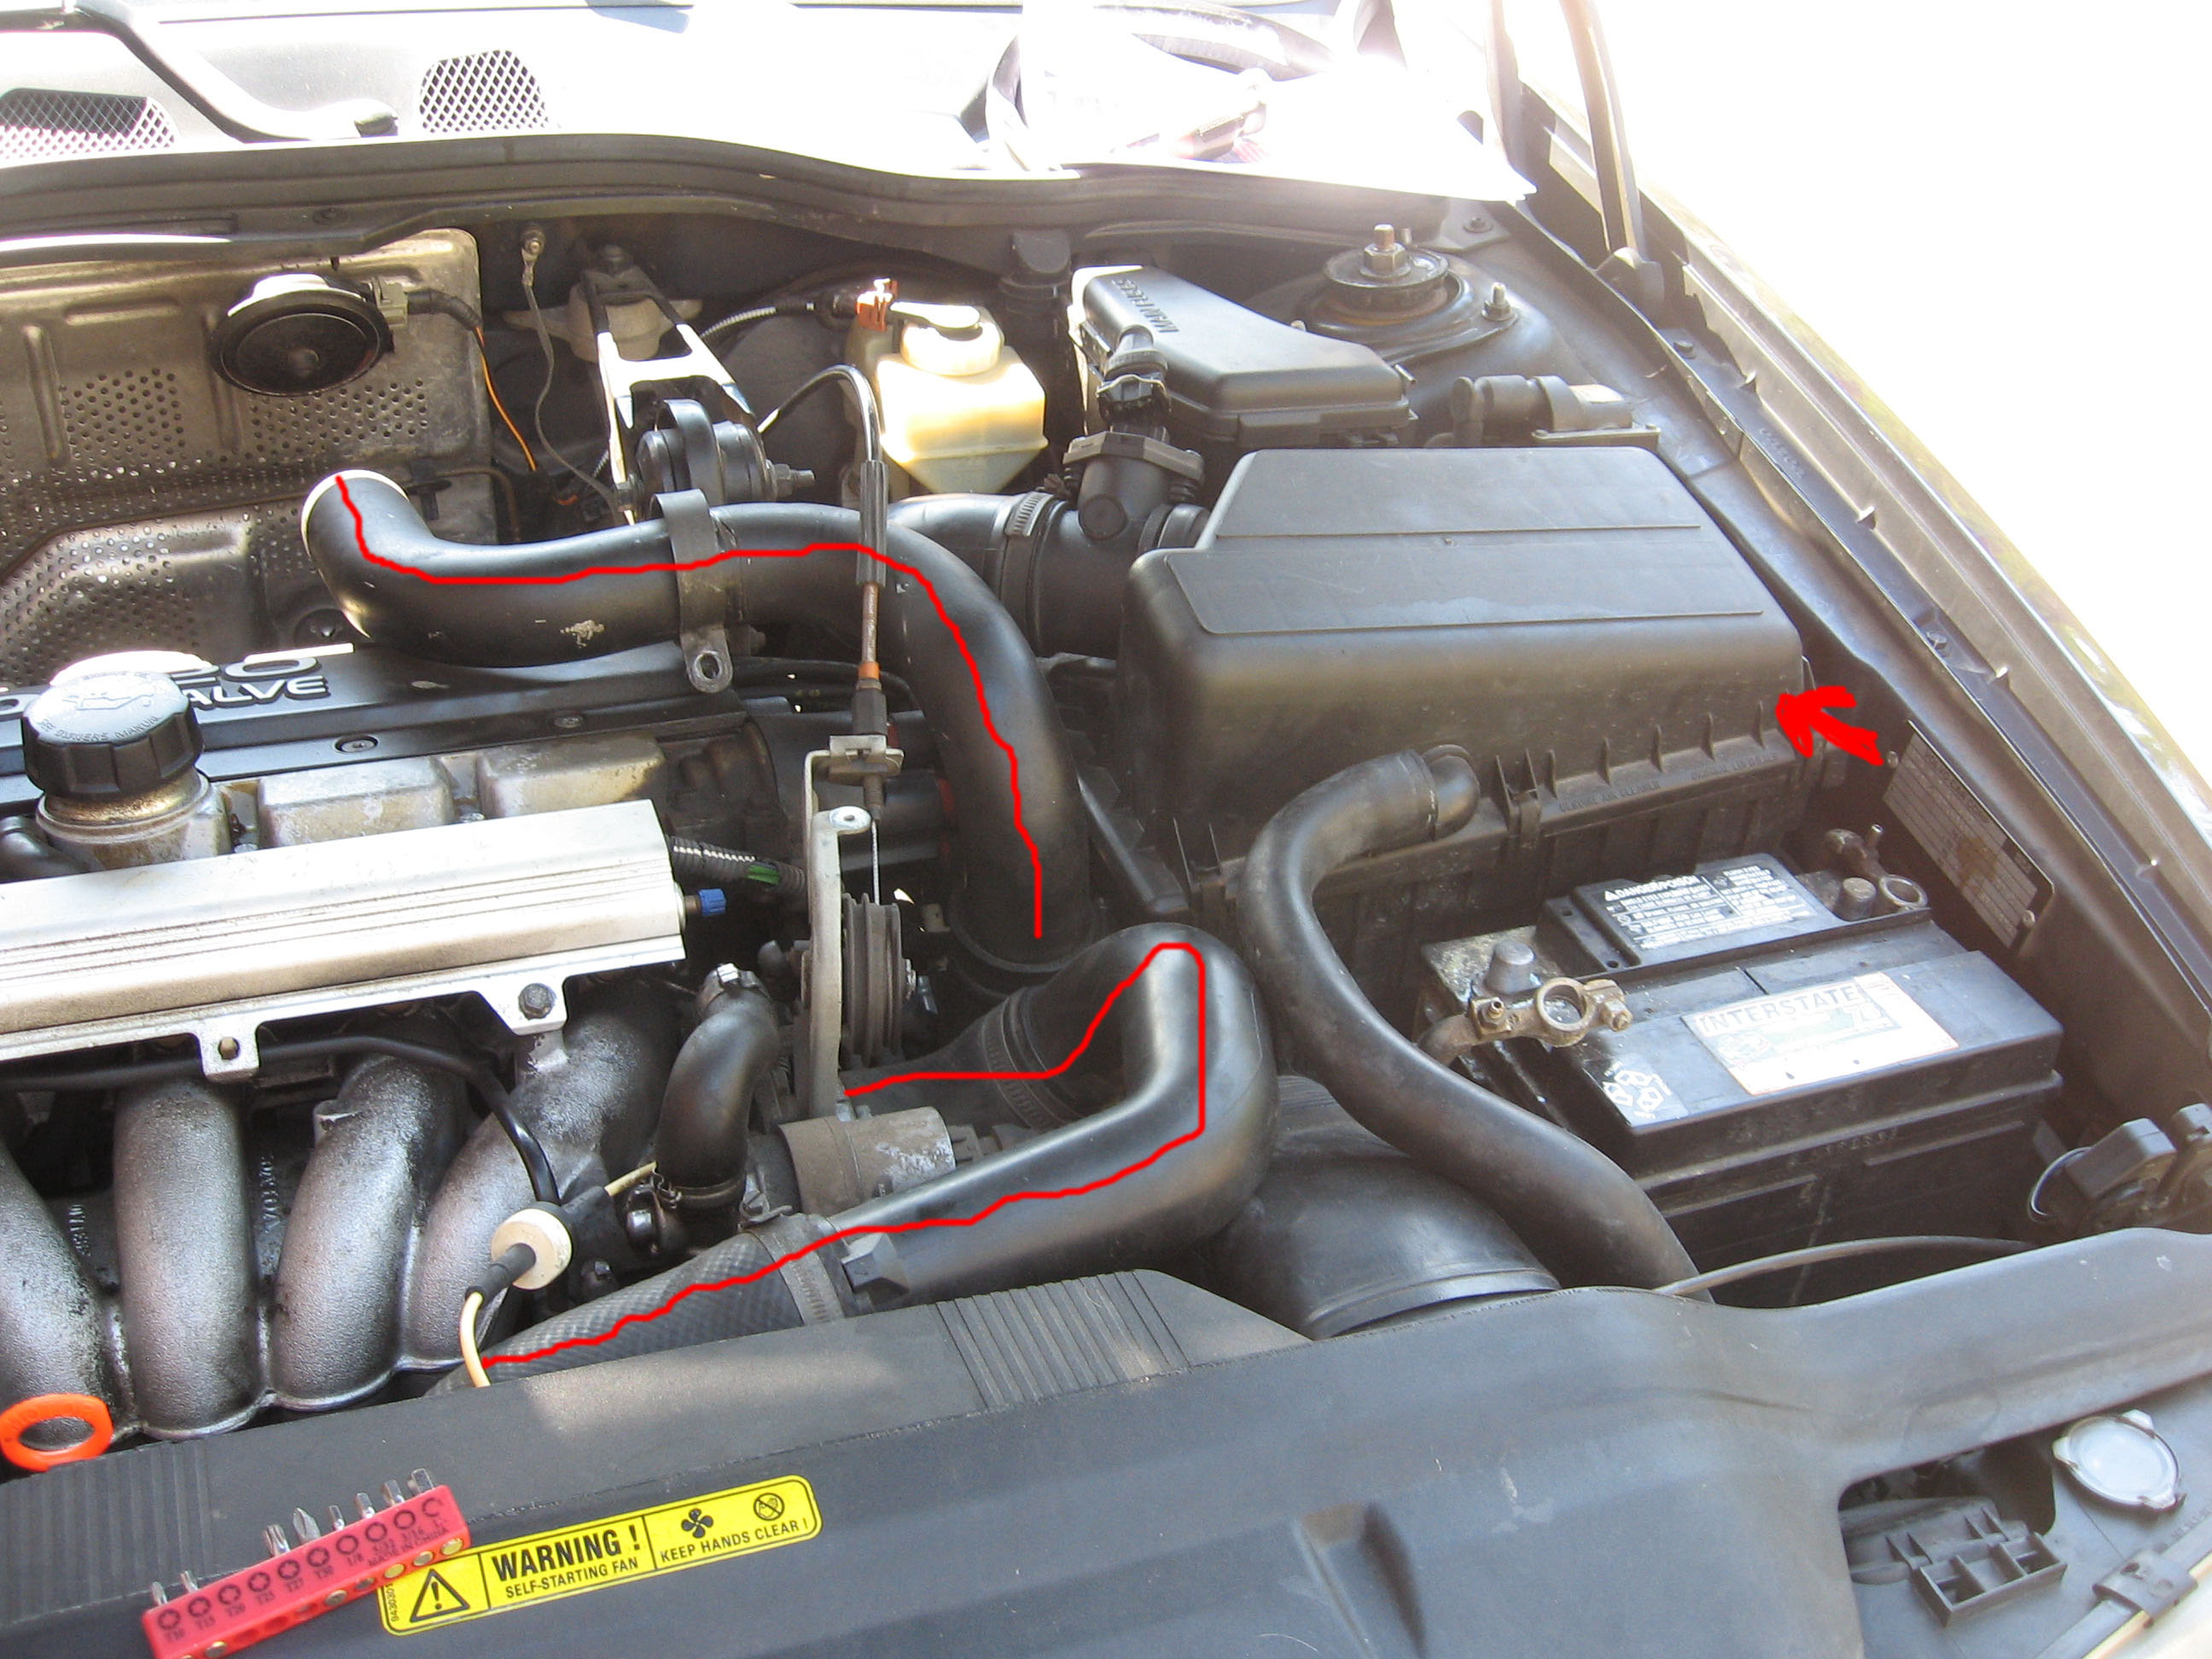 Vacuum Hose Diagram as well File in addition Volvo V together with File further Pic. on 1998 volvo s70 vacuum hose diagram